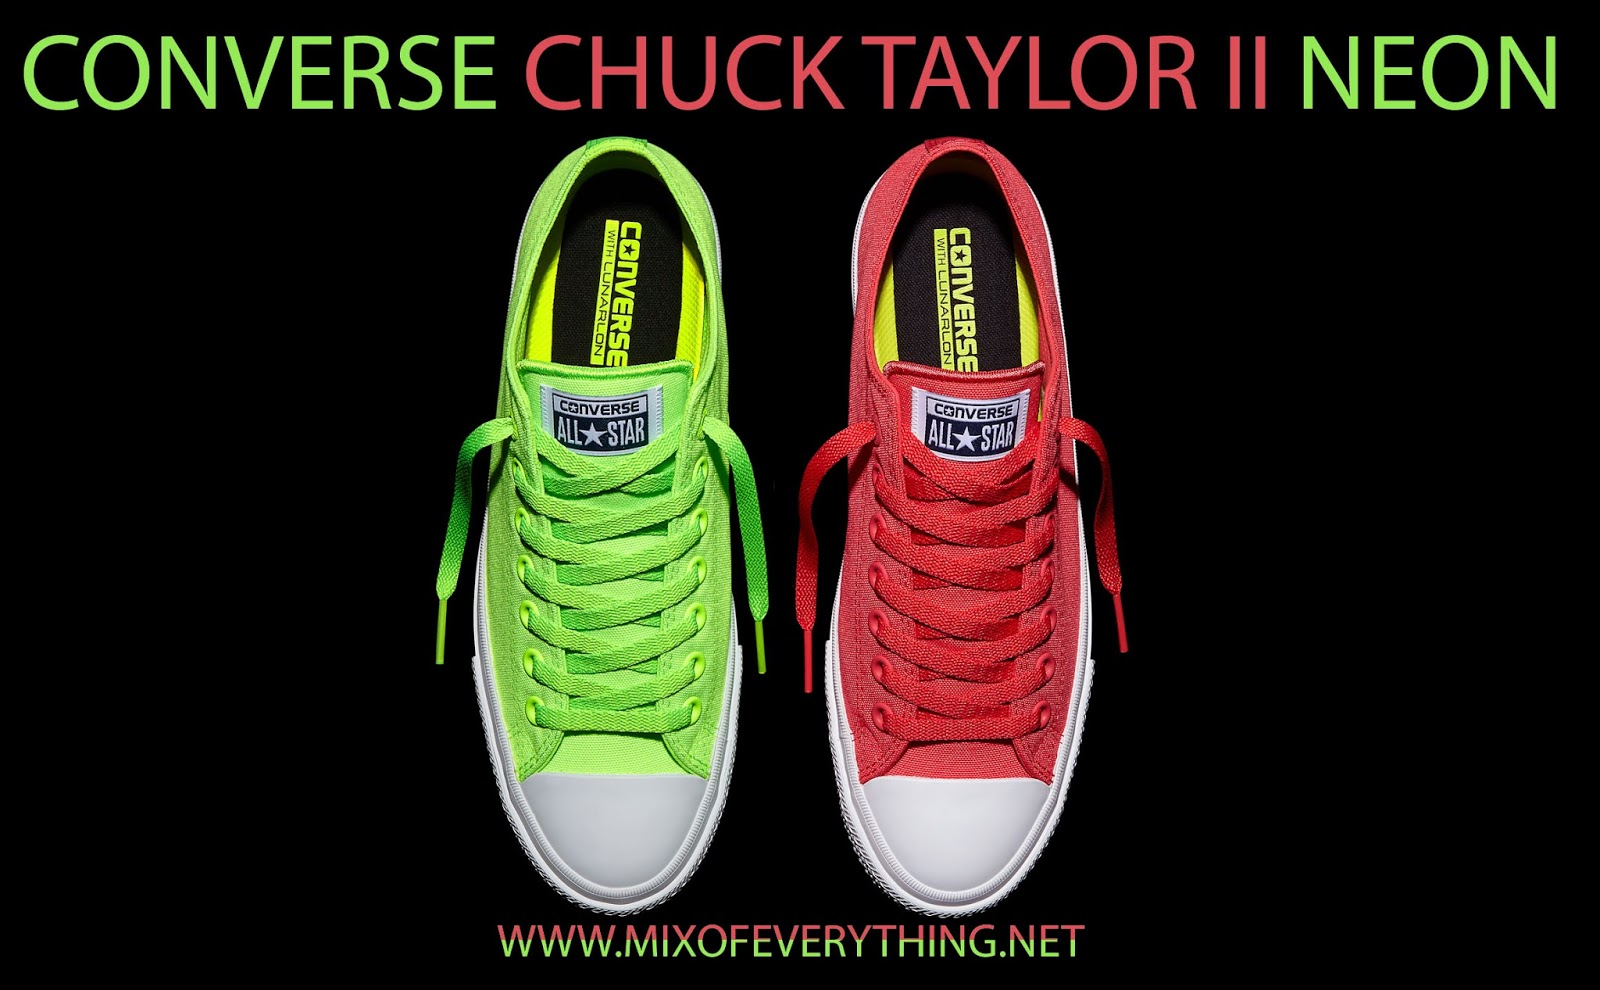 d171af925c1 Converse introduces new bold and bright colorways this season with the Converse  Chuck Taylor All Star II Neon. Bright colors